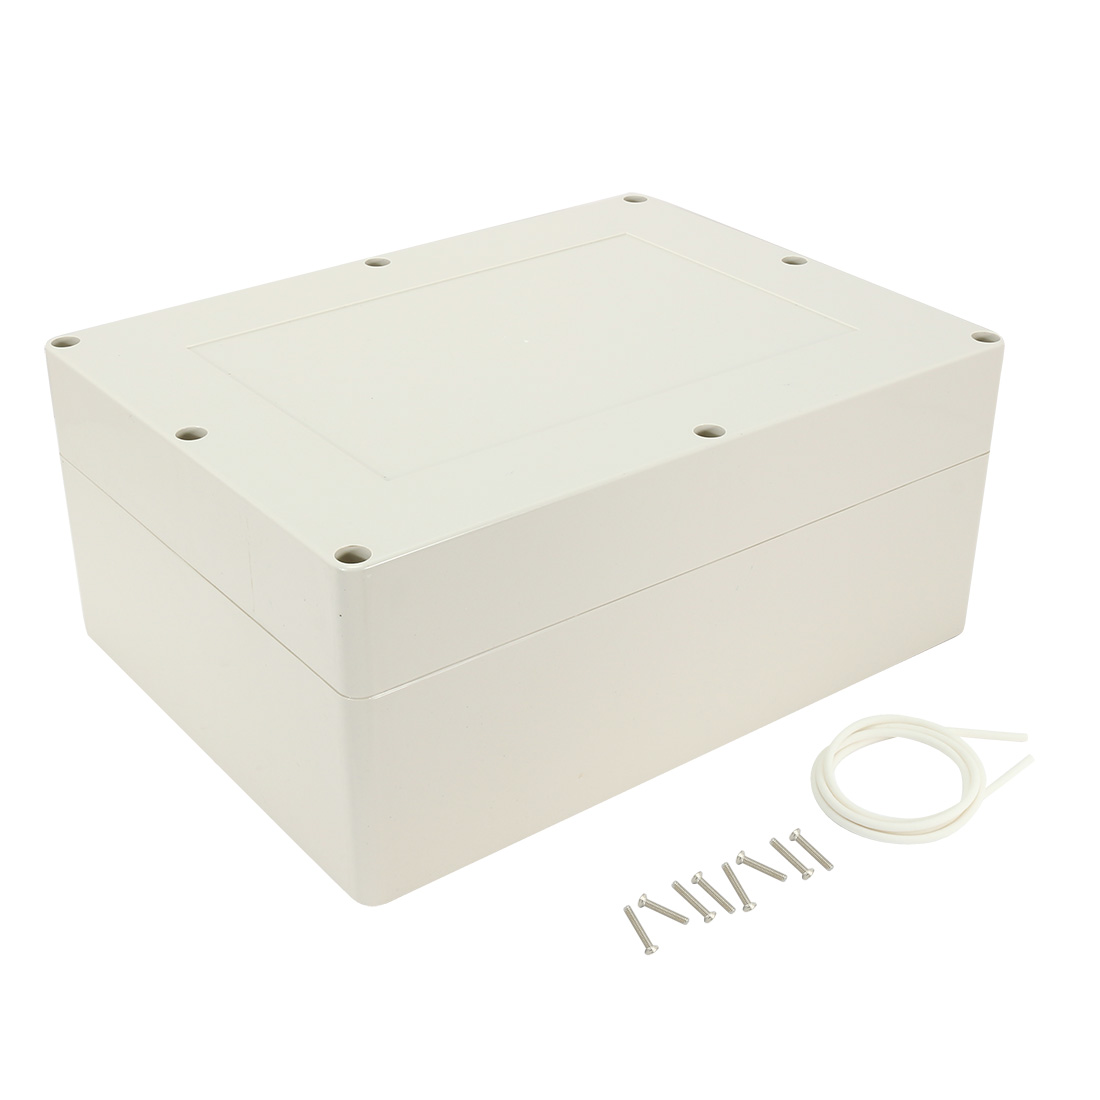 """12.6""""x9.5""""x5.5""""(320mmx240mmx140mm) ABS Junction Box Universal Electric Project Enclosure"""